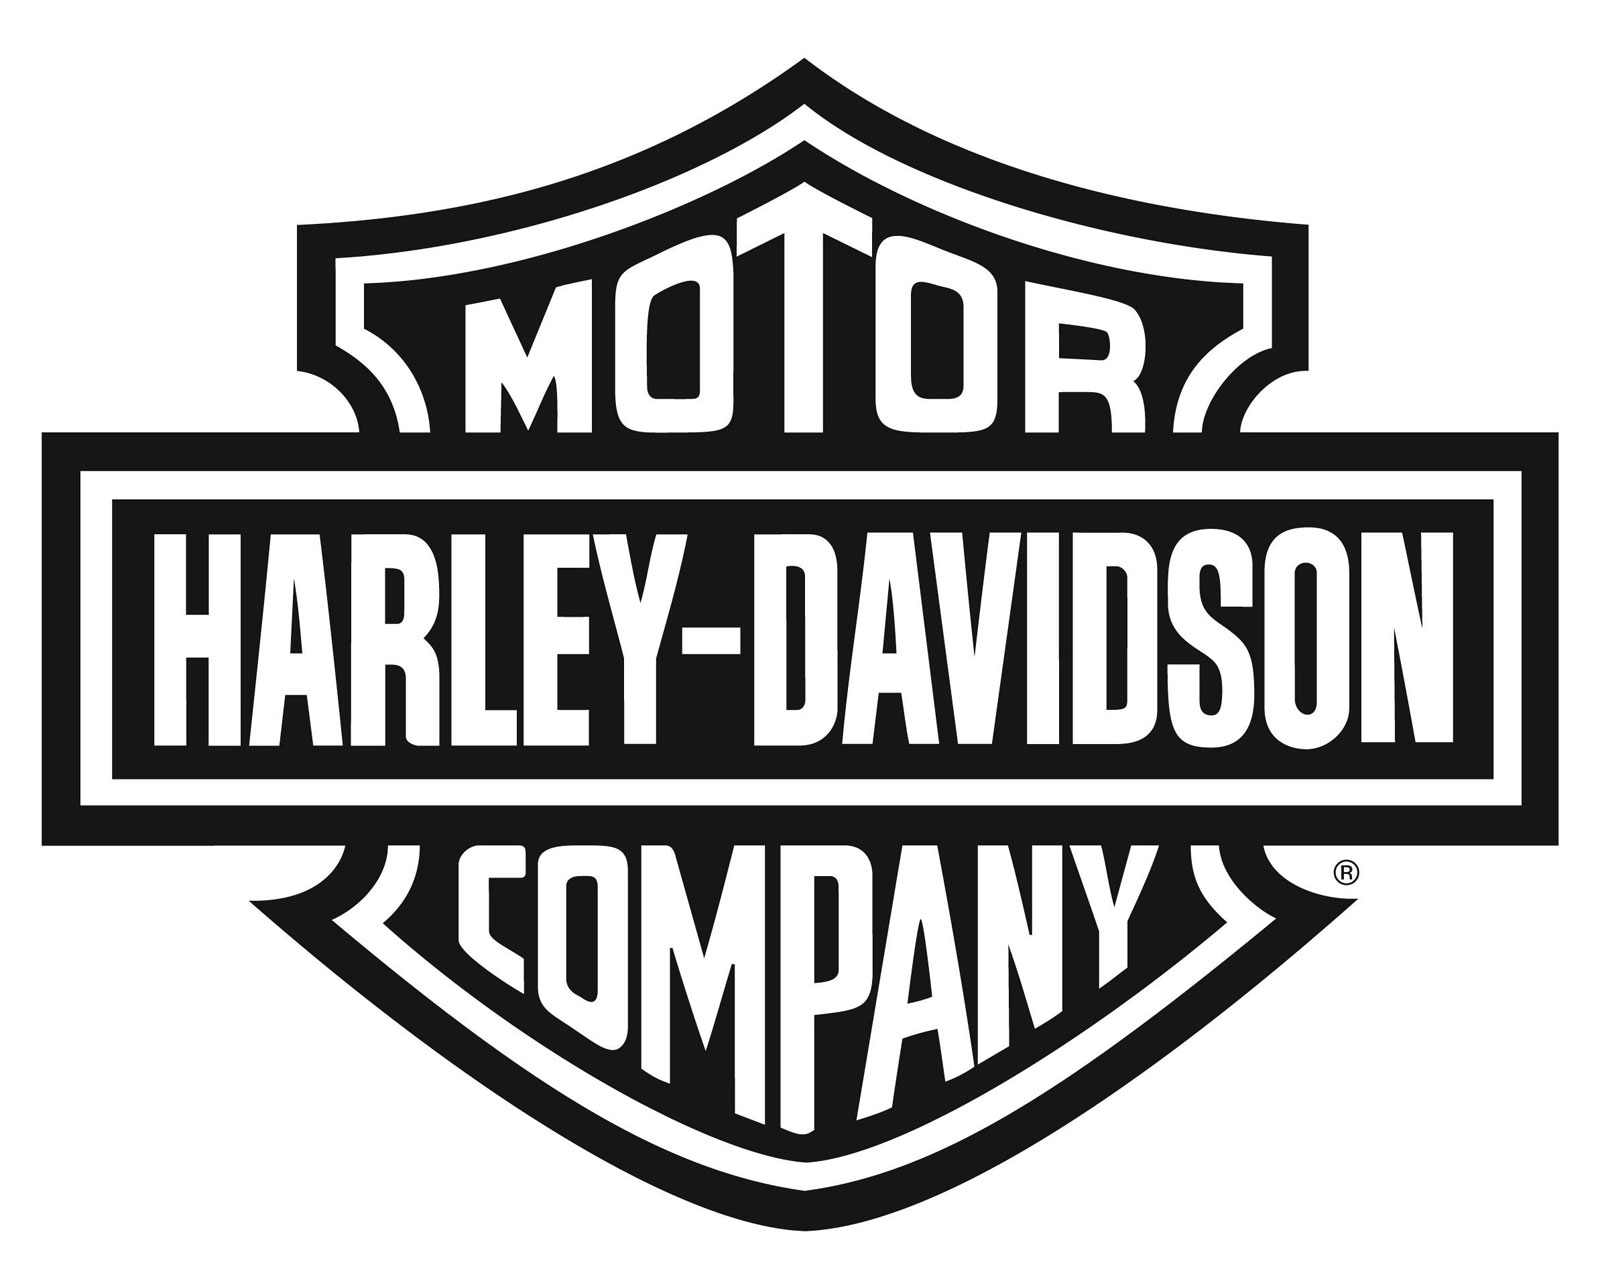 harley logo black and white vector | harley davidson | pinterest